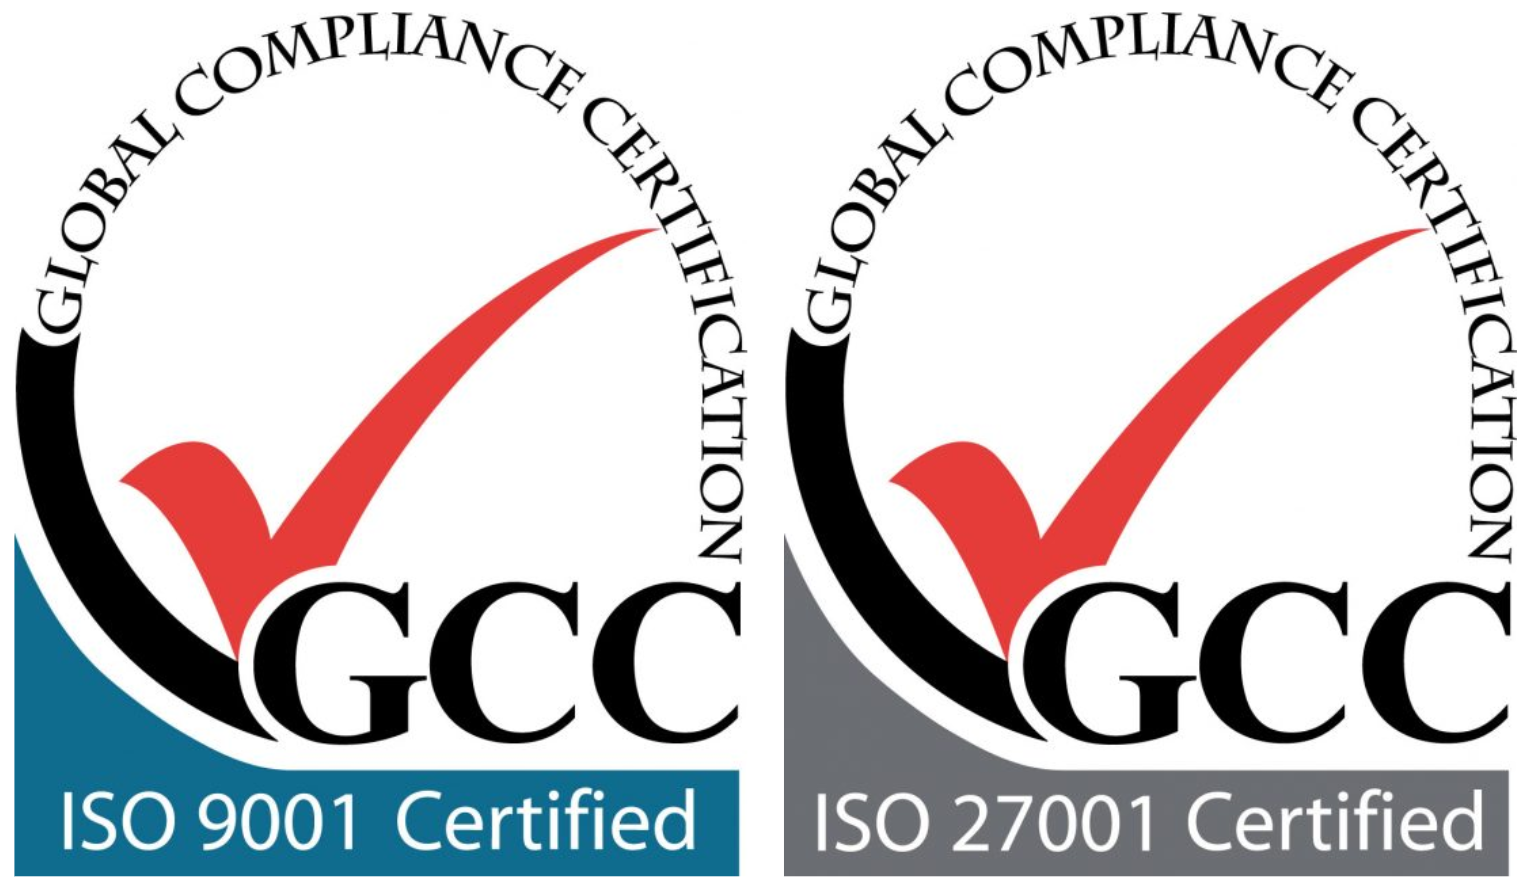 Gaia Resources is fully ISO-9001 and ISO-27001 certified